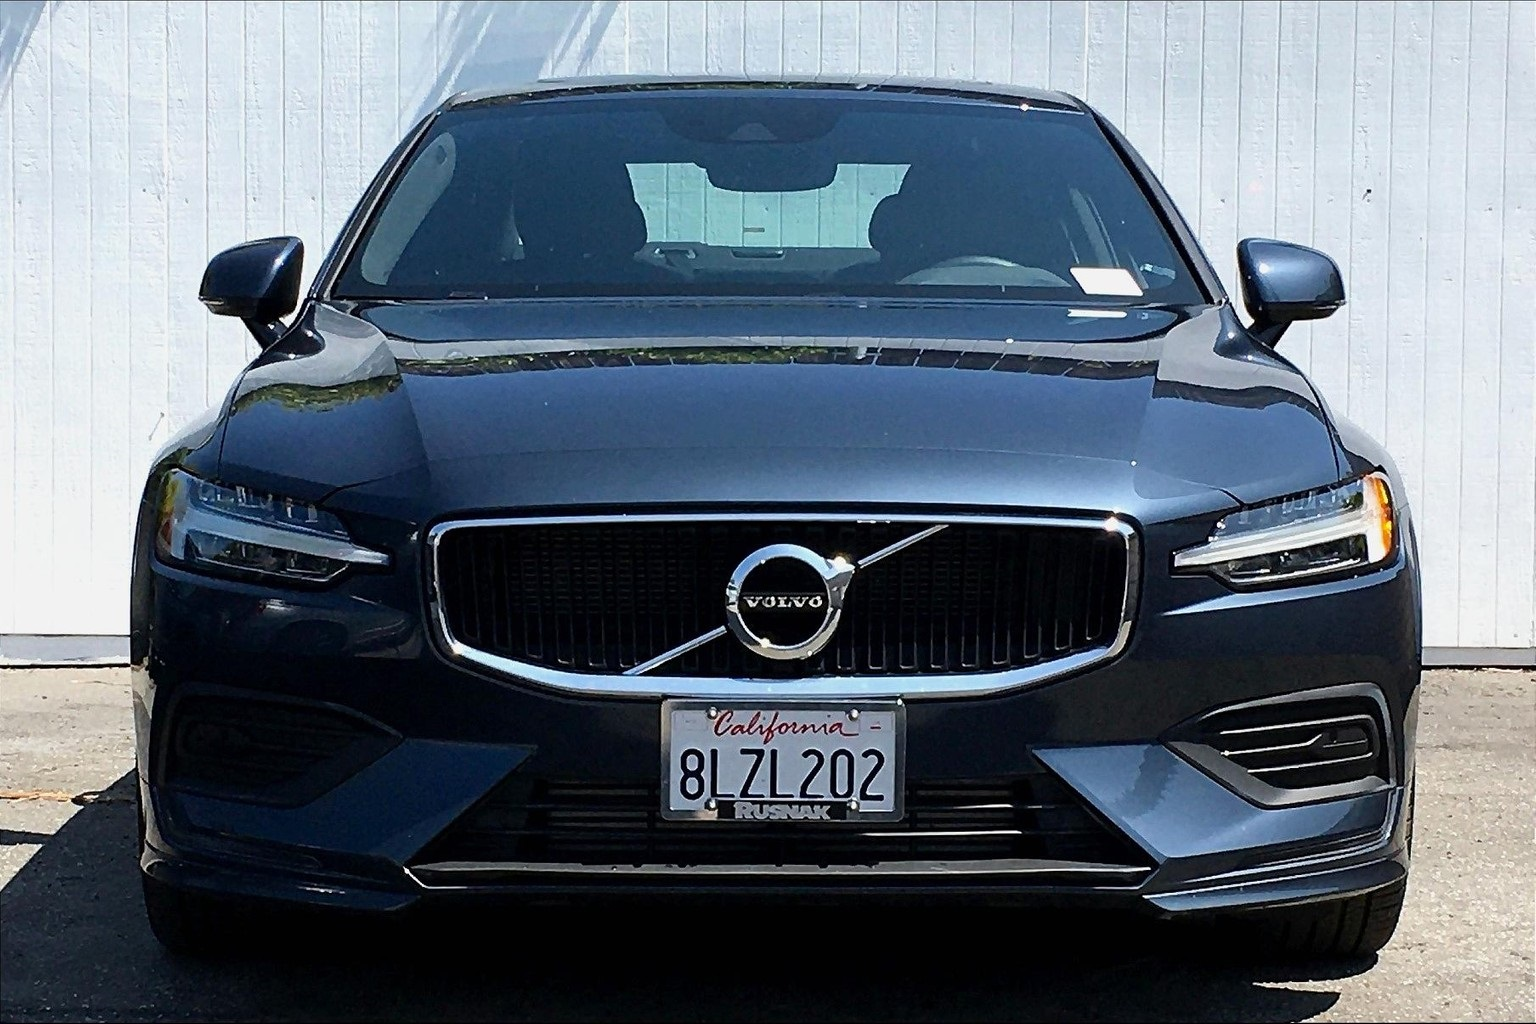 Pre-Owned 2020 Volvo S60 T5 Momentum